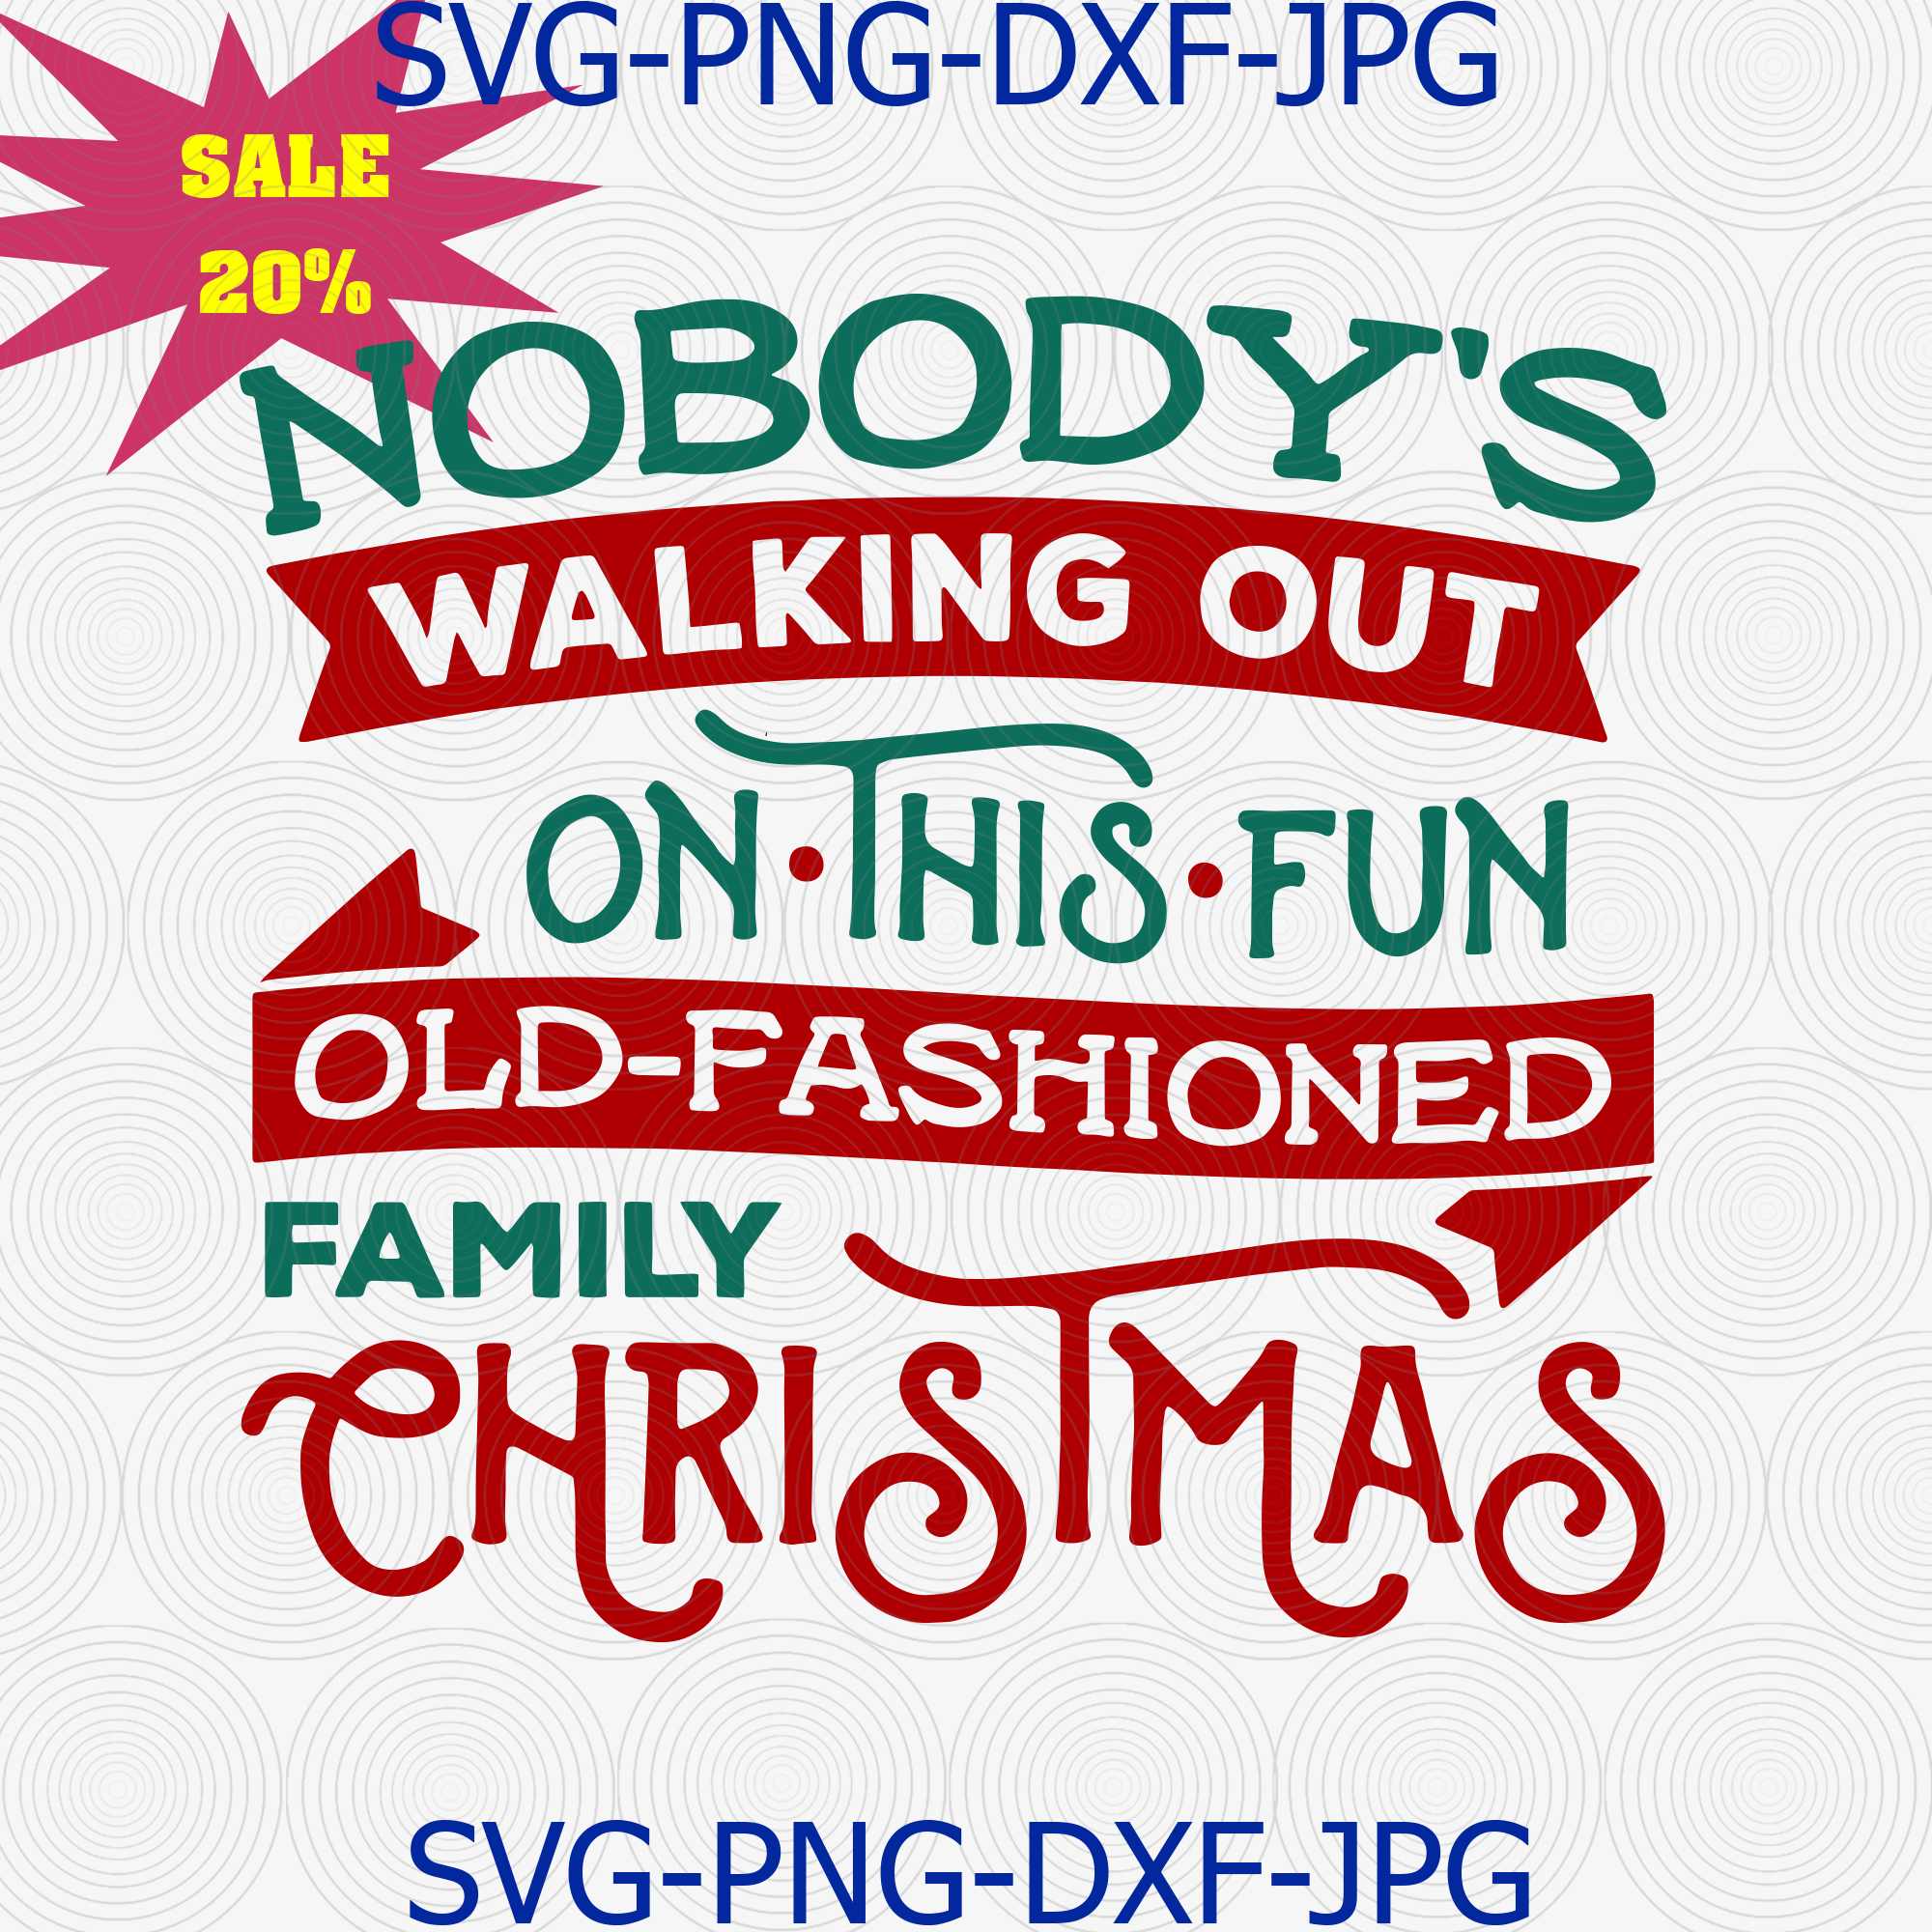 Christmas Vacation Svg Nobody Walking Out On By Digital4u On Zibbet